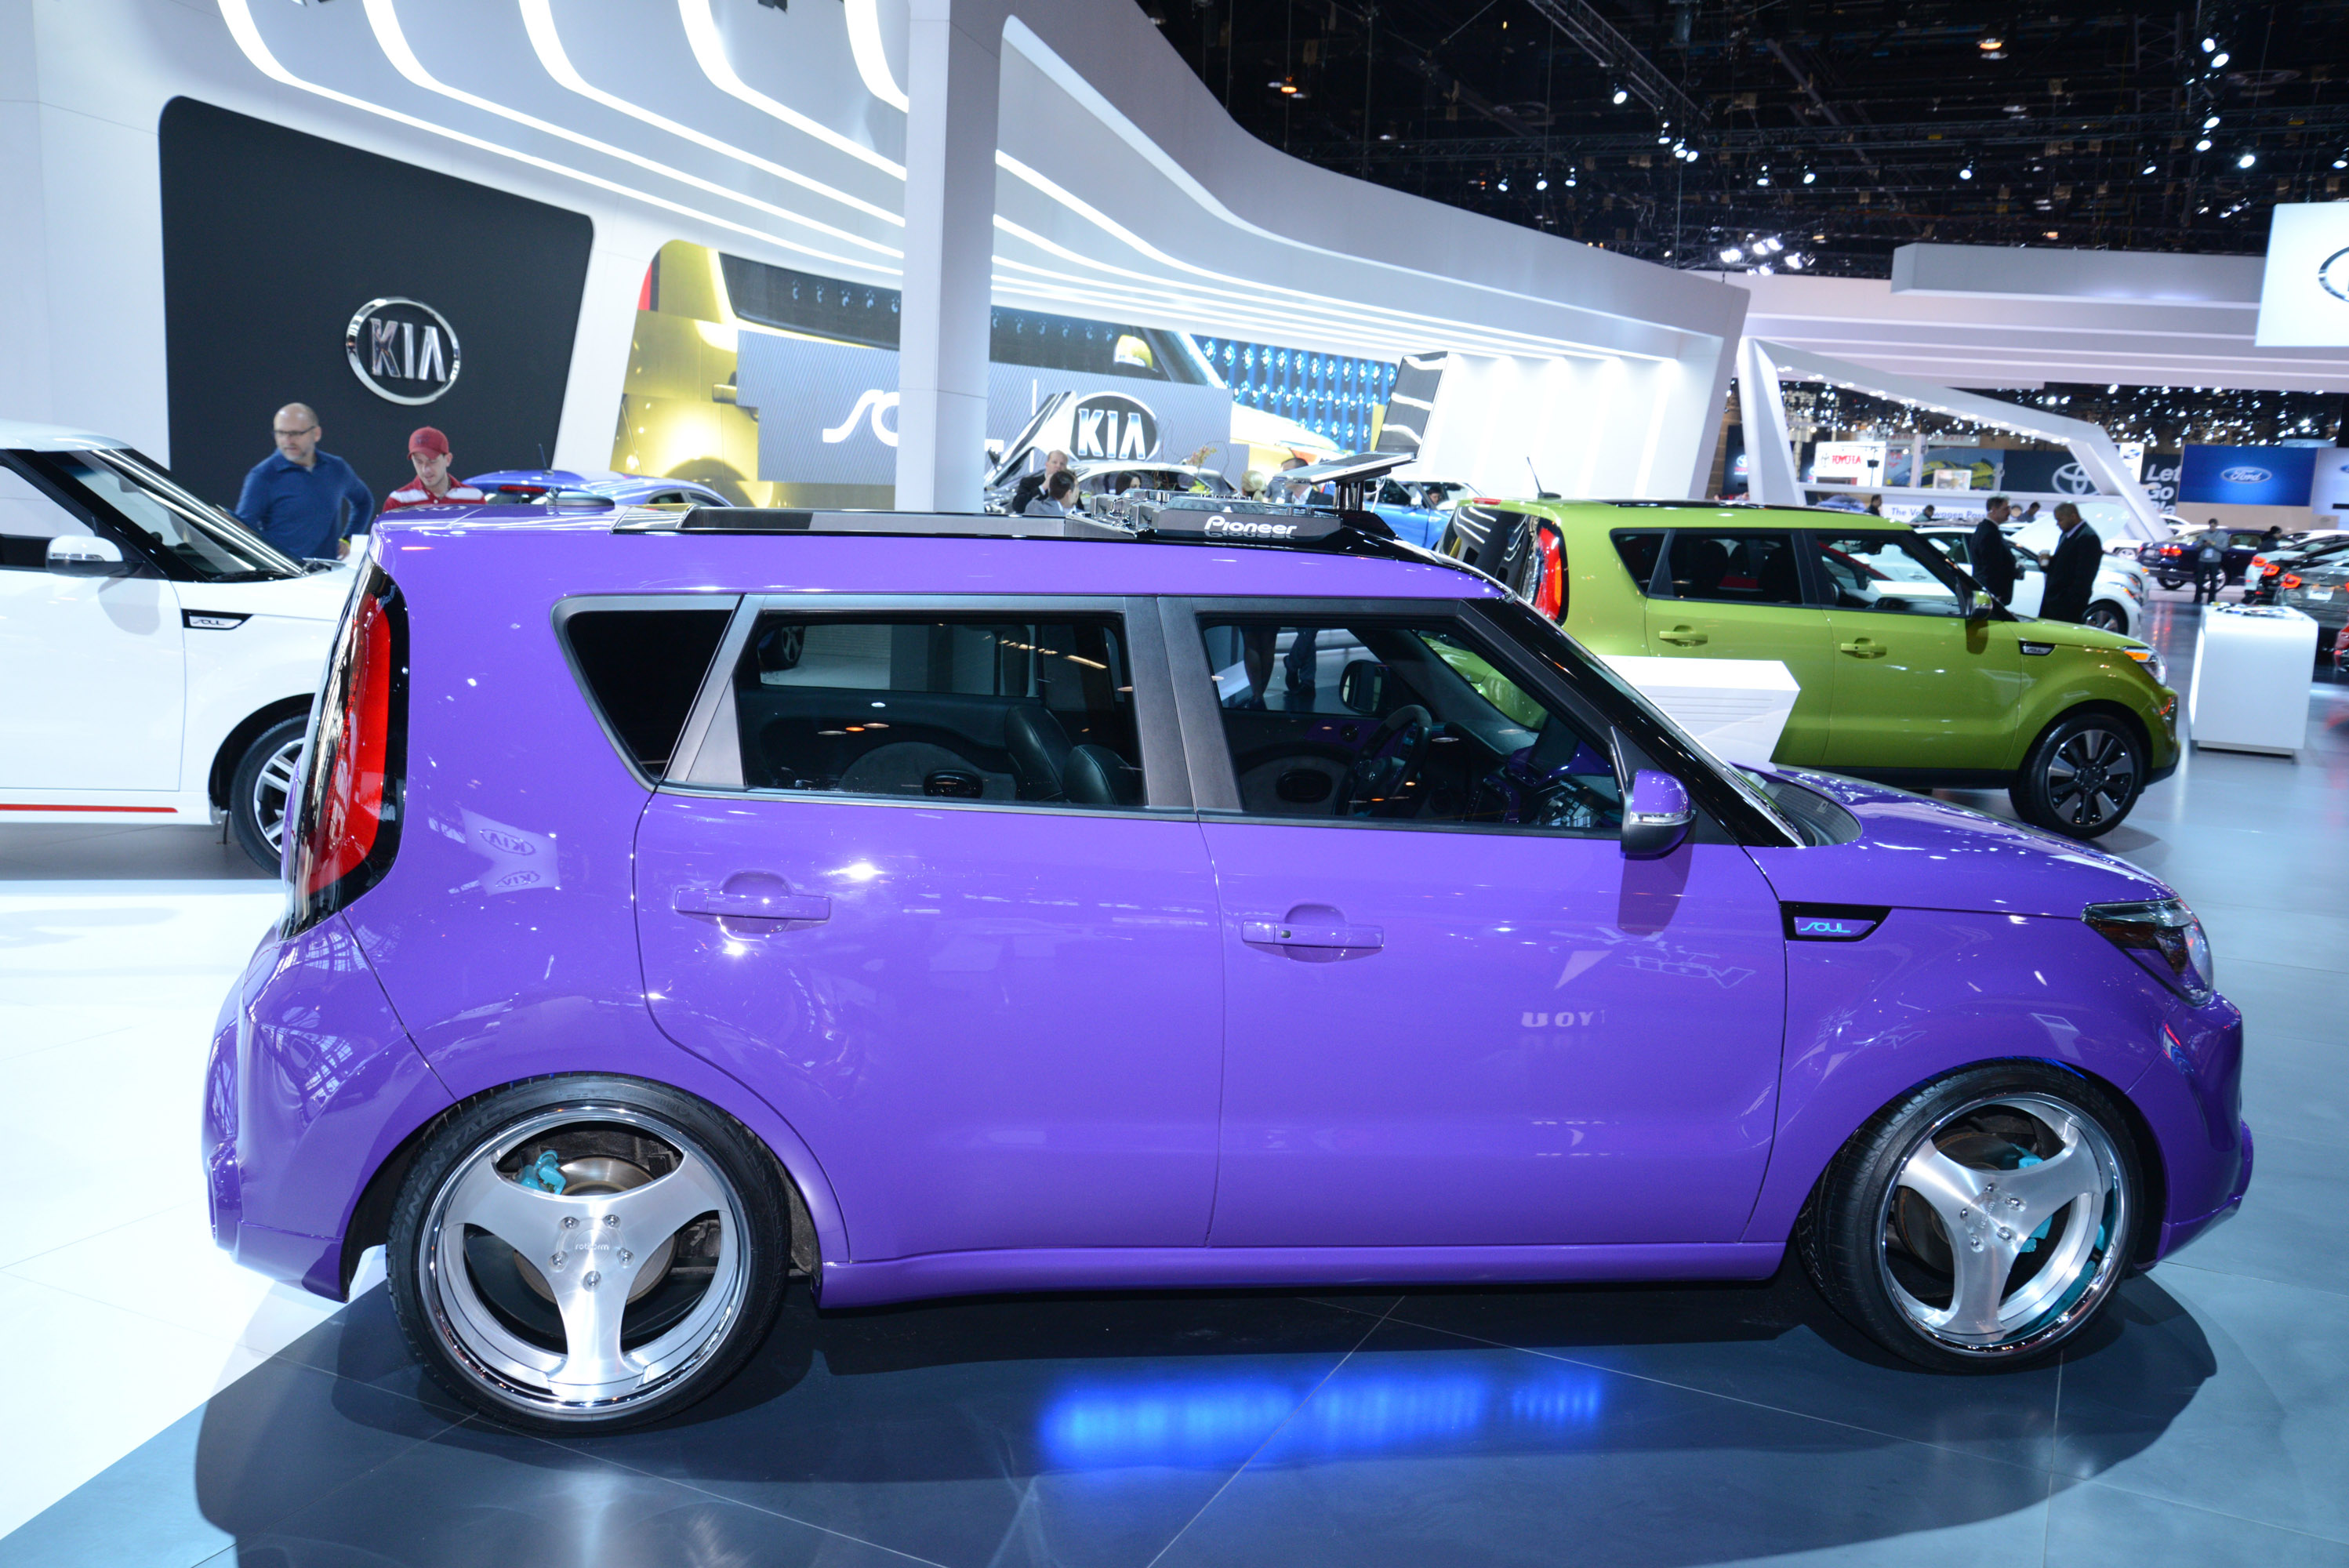 2014 kia soul review specs pictures mpg price car interior design. Black Bedroom Furniture Sets. Home Design Ideas